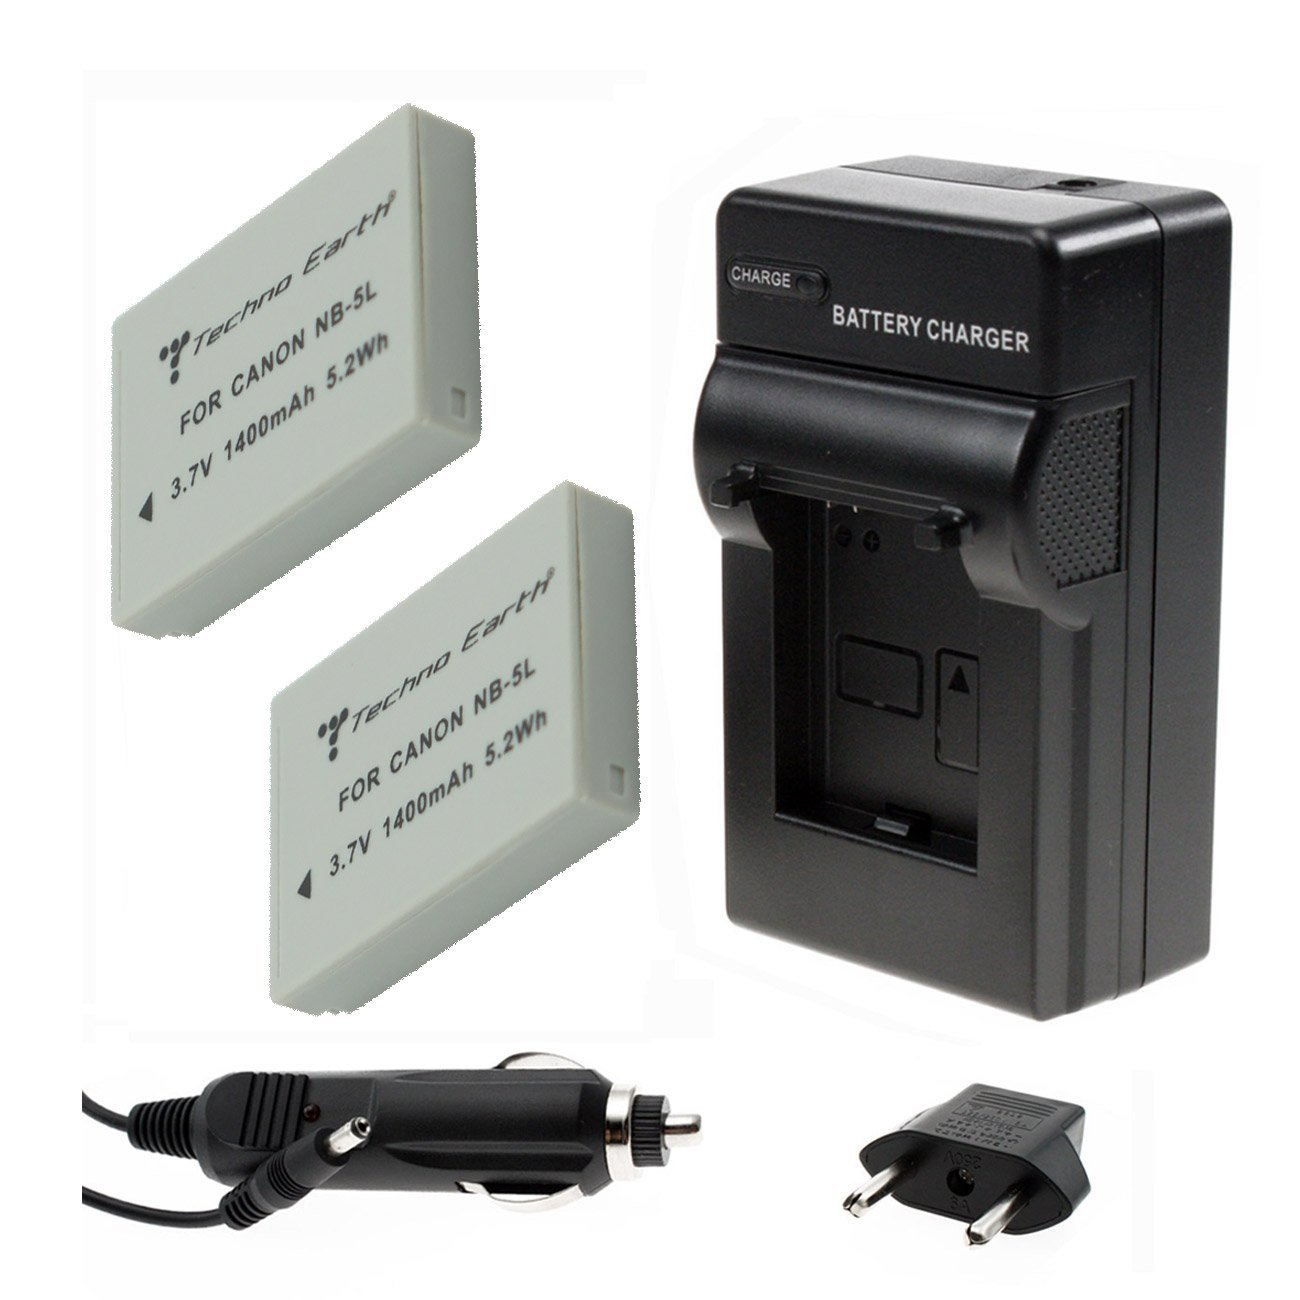 TECHNO EARTH® 2-PACK BATTERY AND 1 CHARGER FOR CANON NB-5L AND CANON POWERSHOT S100, S110, SD700 IS, SD790 IS, SD800 IS, SD850 IS, SD870 IS, SD880 IS, SD890 IS, SD900 IS, SD950 IS, SD970 IS, SD990 IS, SX200 IS, SX210 IS, SX220 IS, SX230 HS